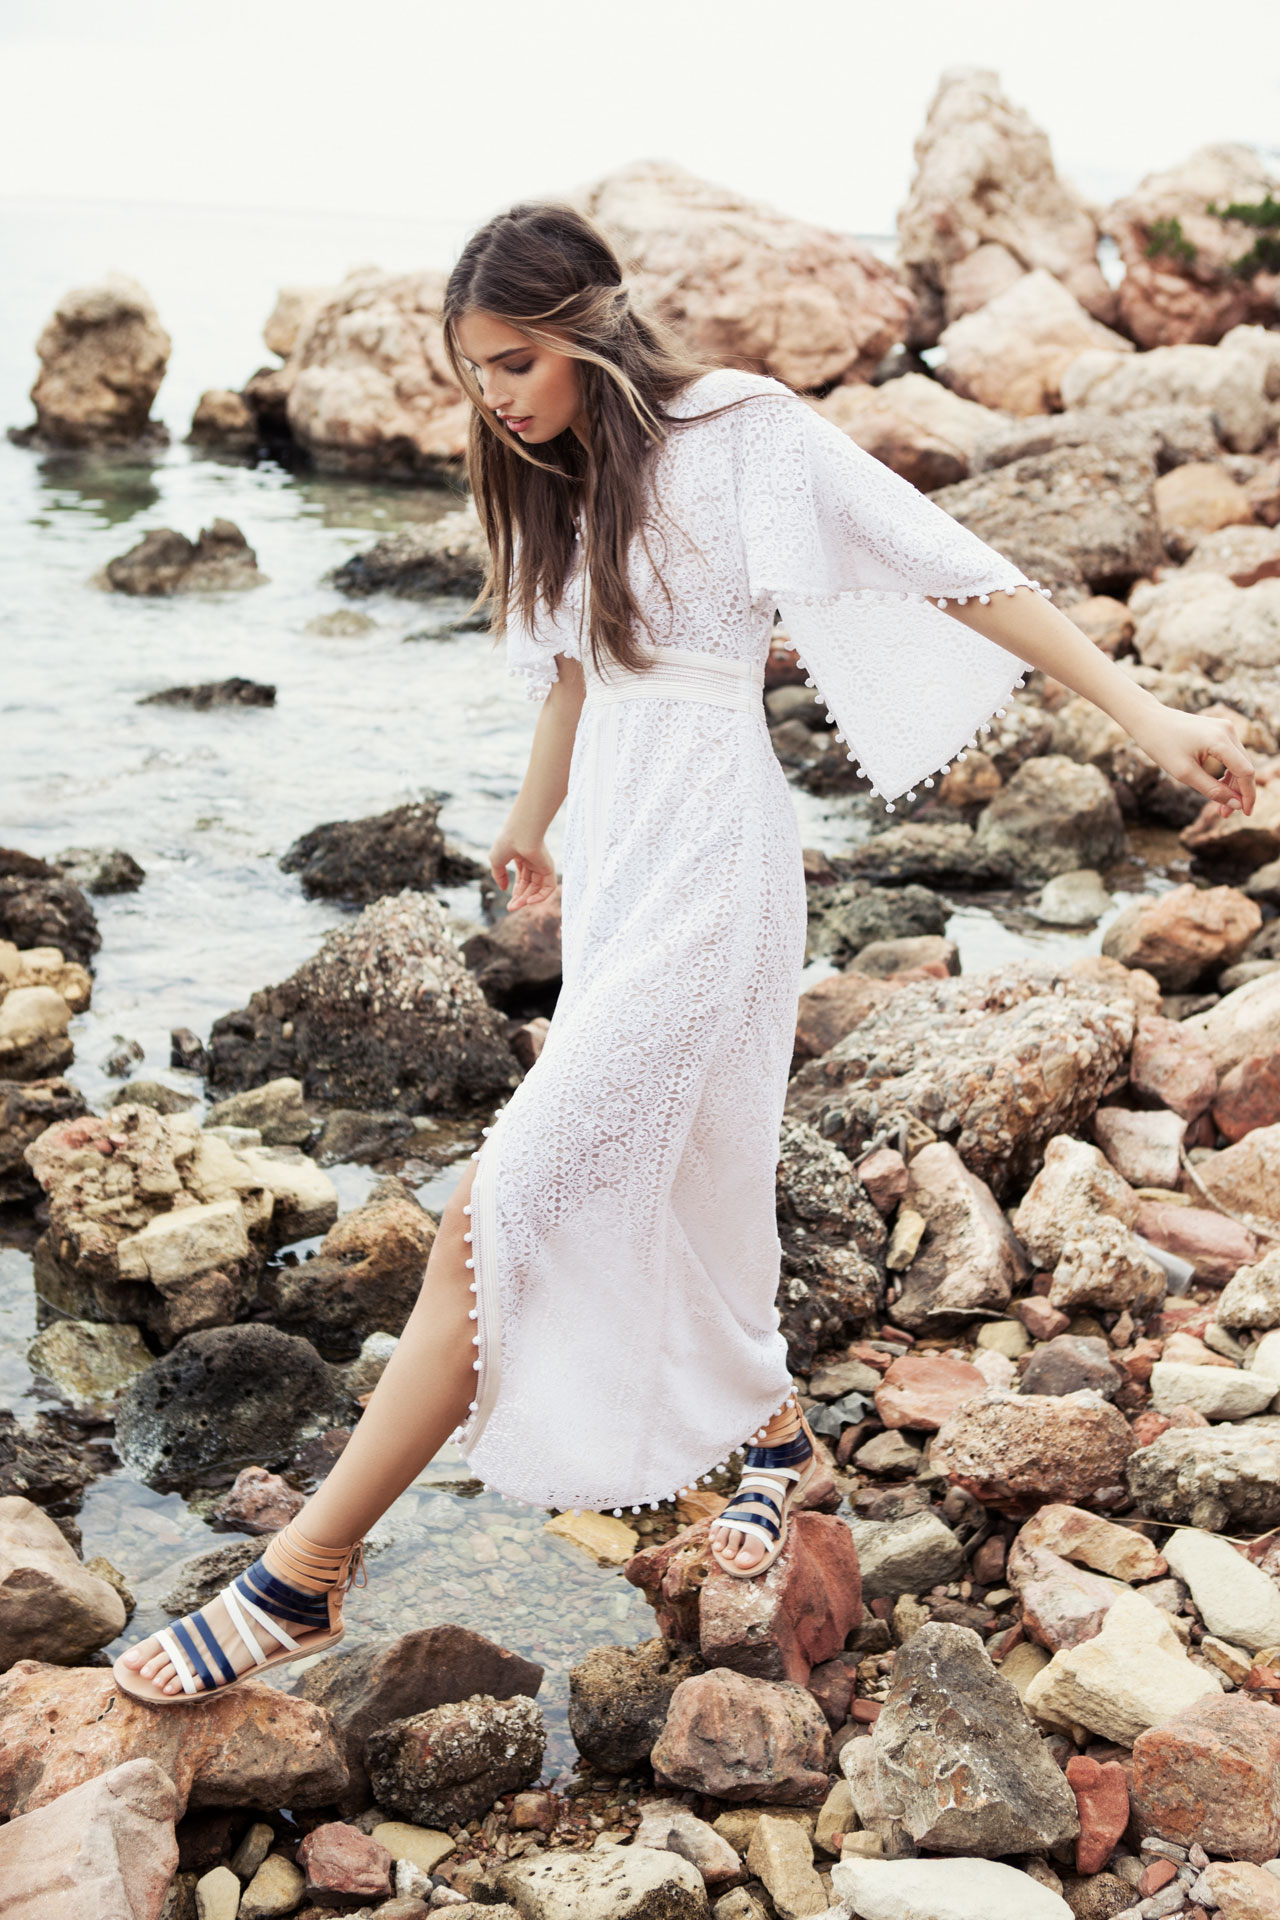 Courtesy of Ancient Greek Sandals.Photo by Yannis Bournias, styling by Manos Jojos.